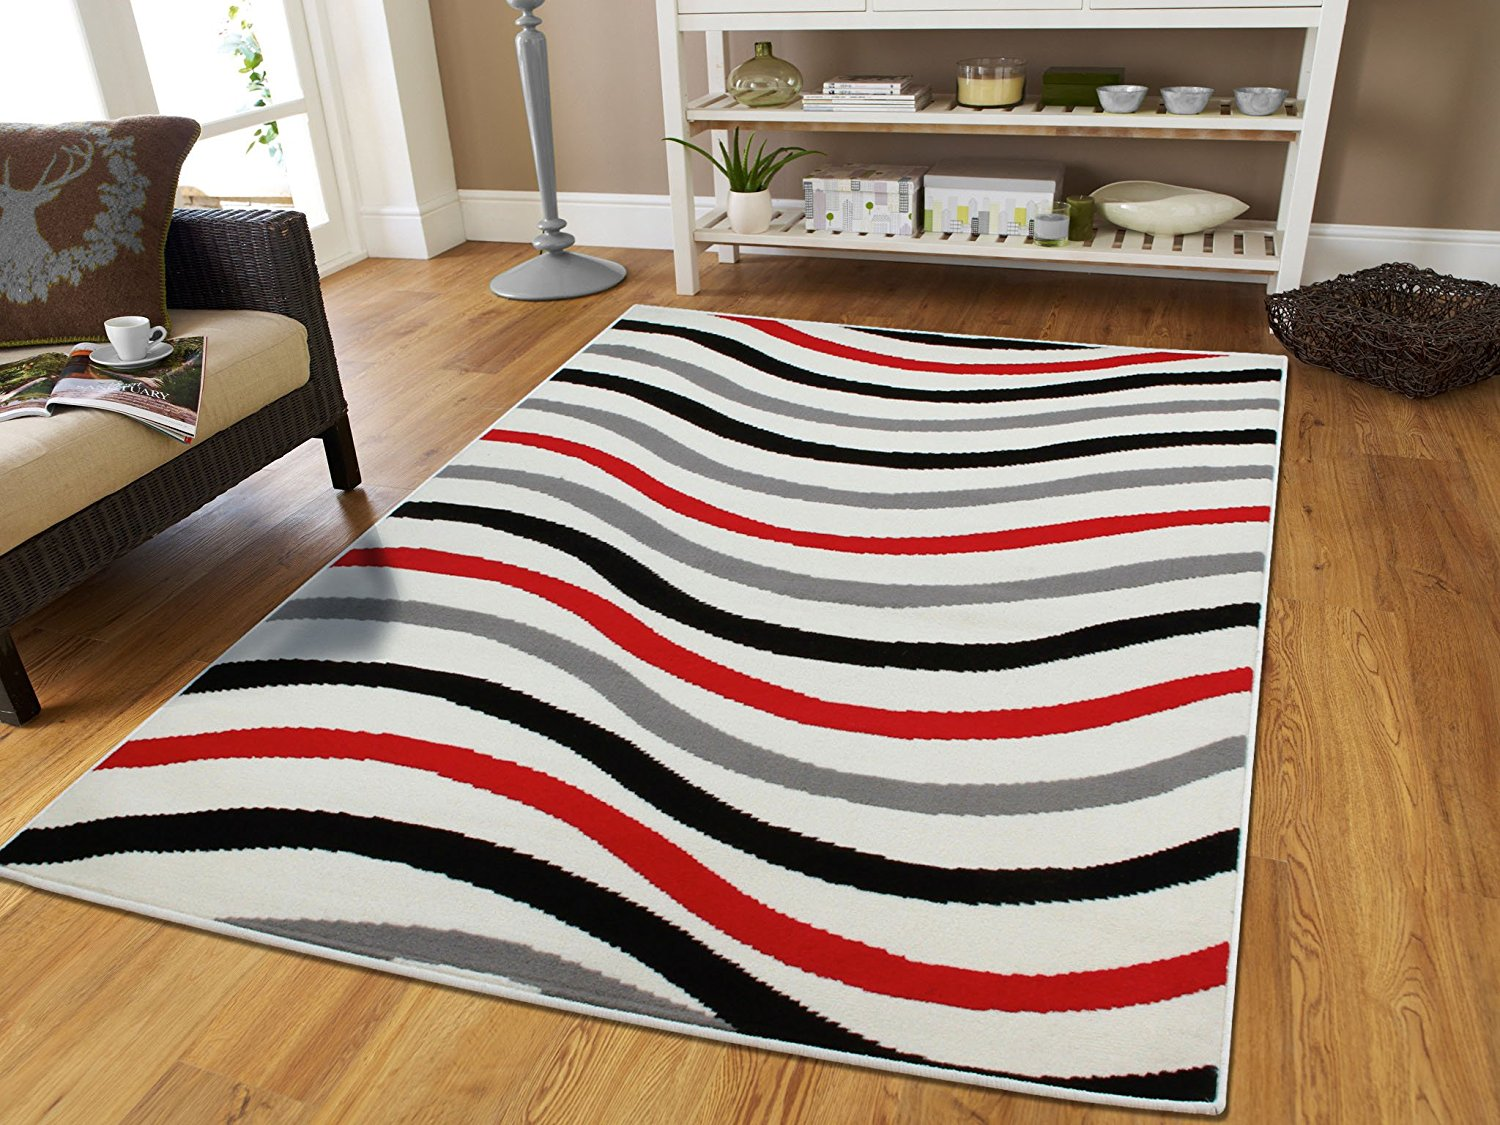 Large 8x11 Red Gray Black WavesLarge Rugs For Bedroom & Living Rooms 8x10  Modern Rugs